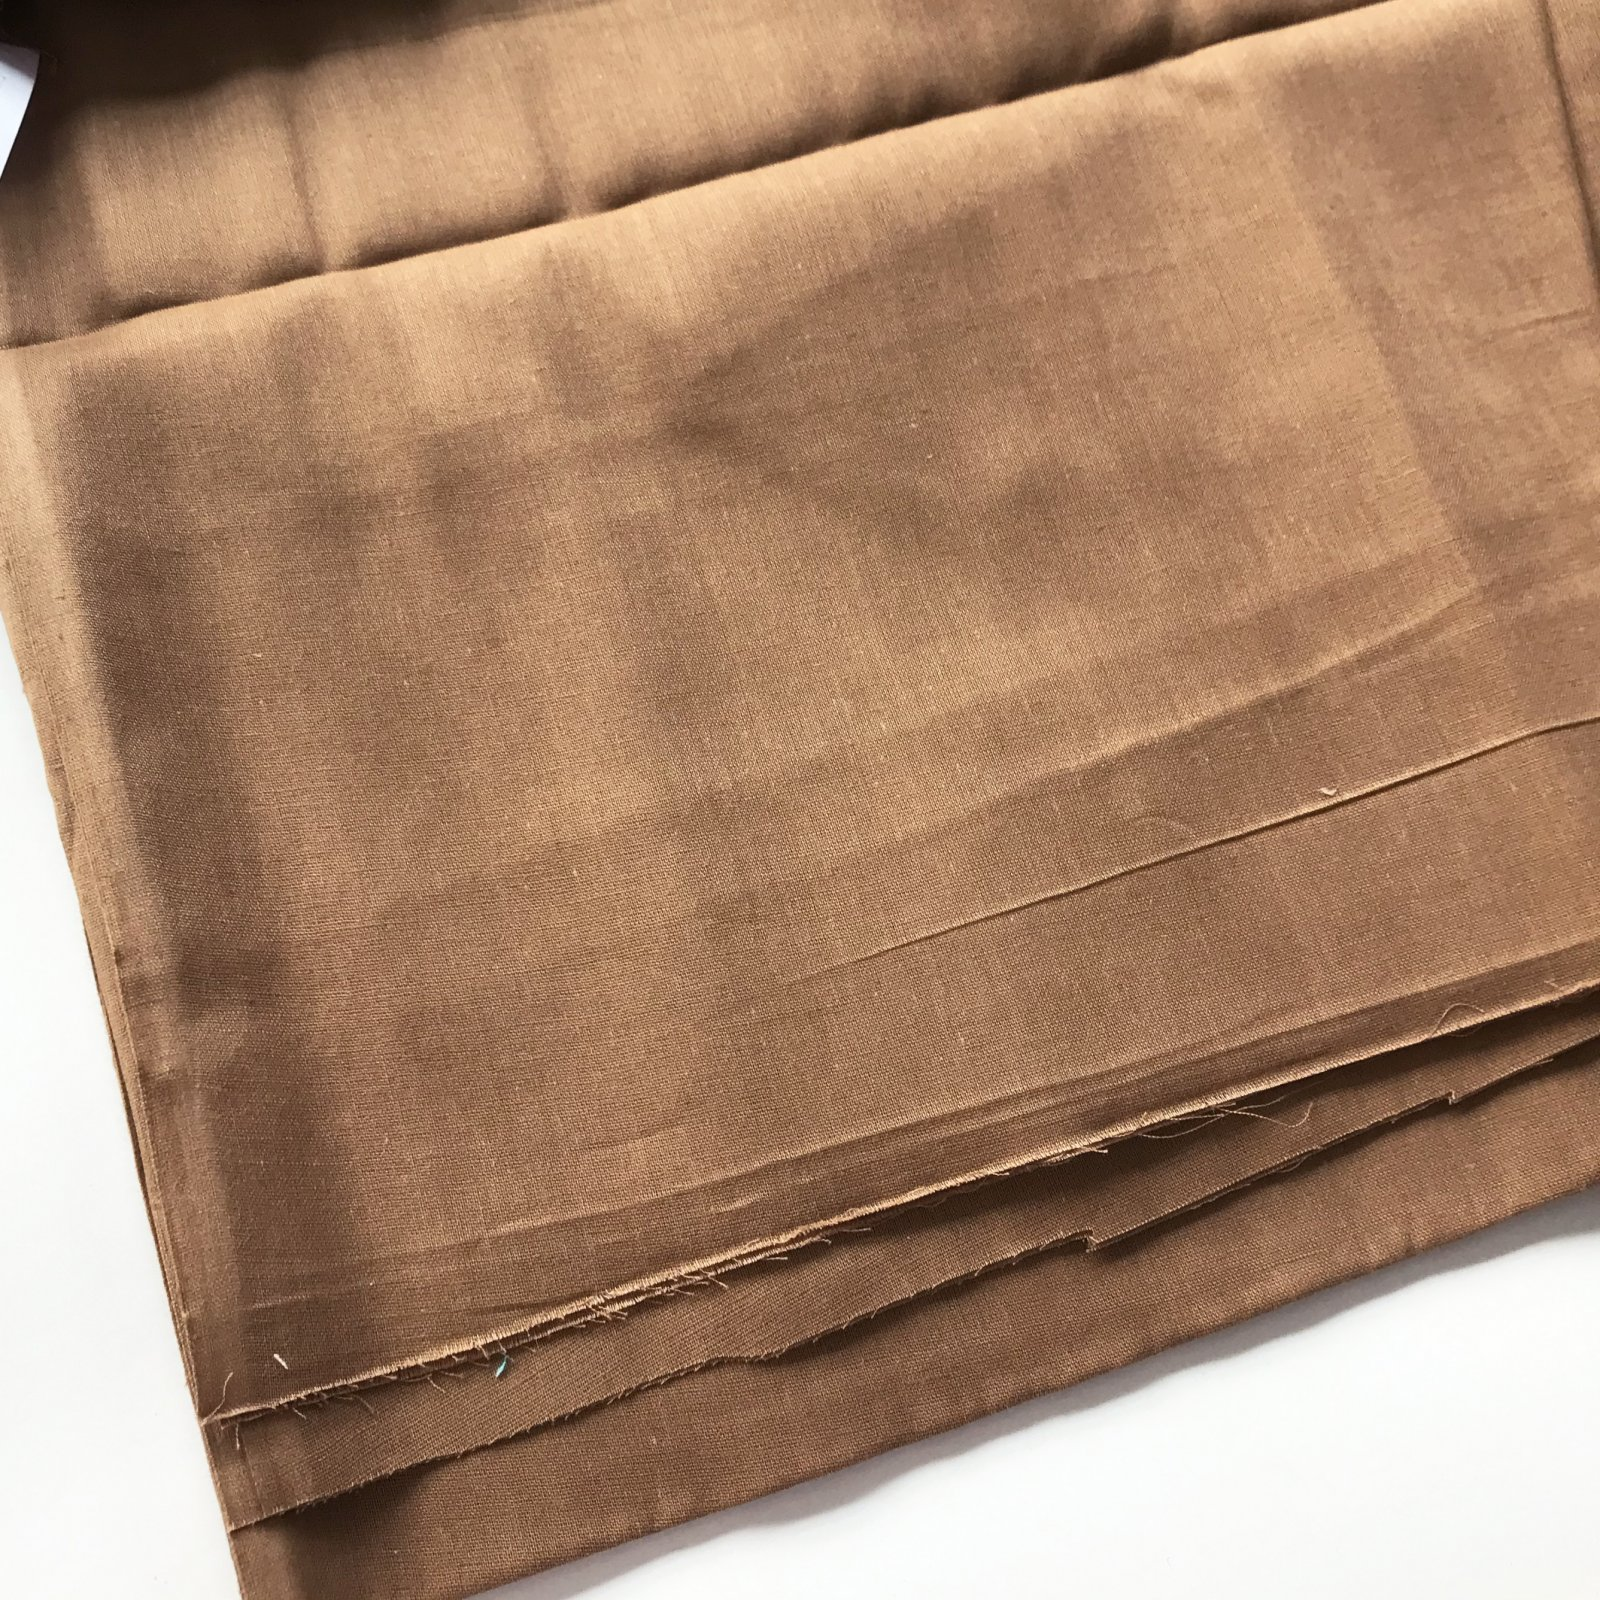 Remnant - Sheer Cotton Brown - 1 3/4 yd